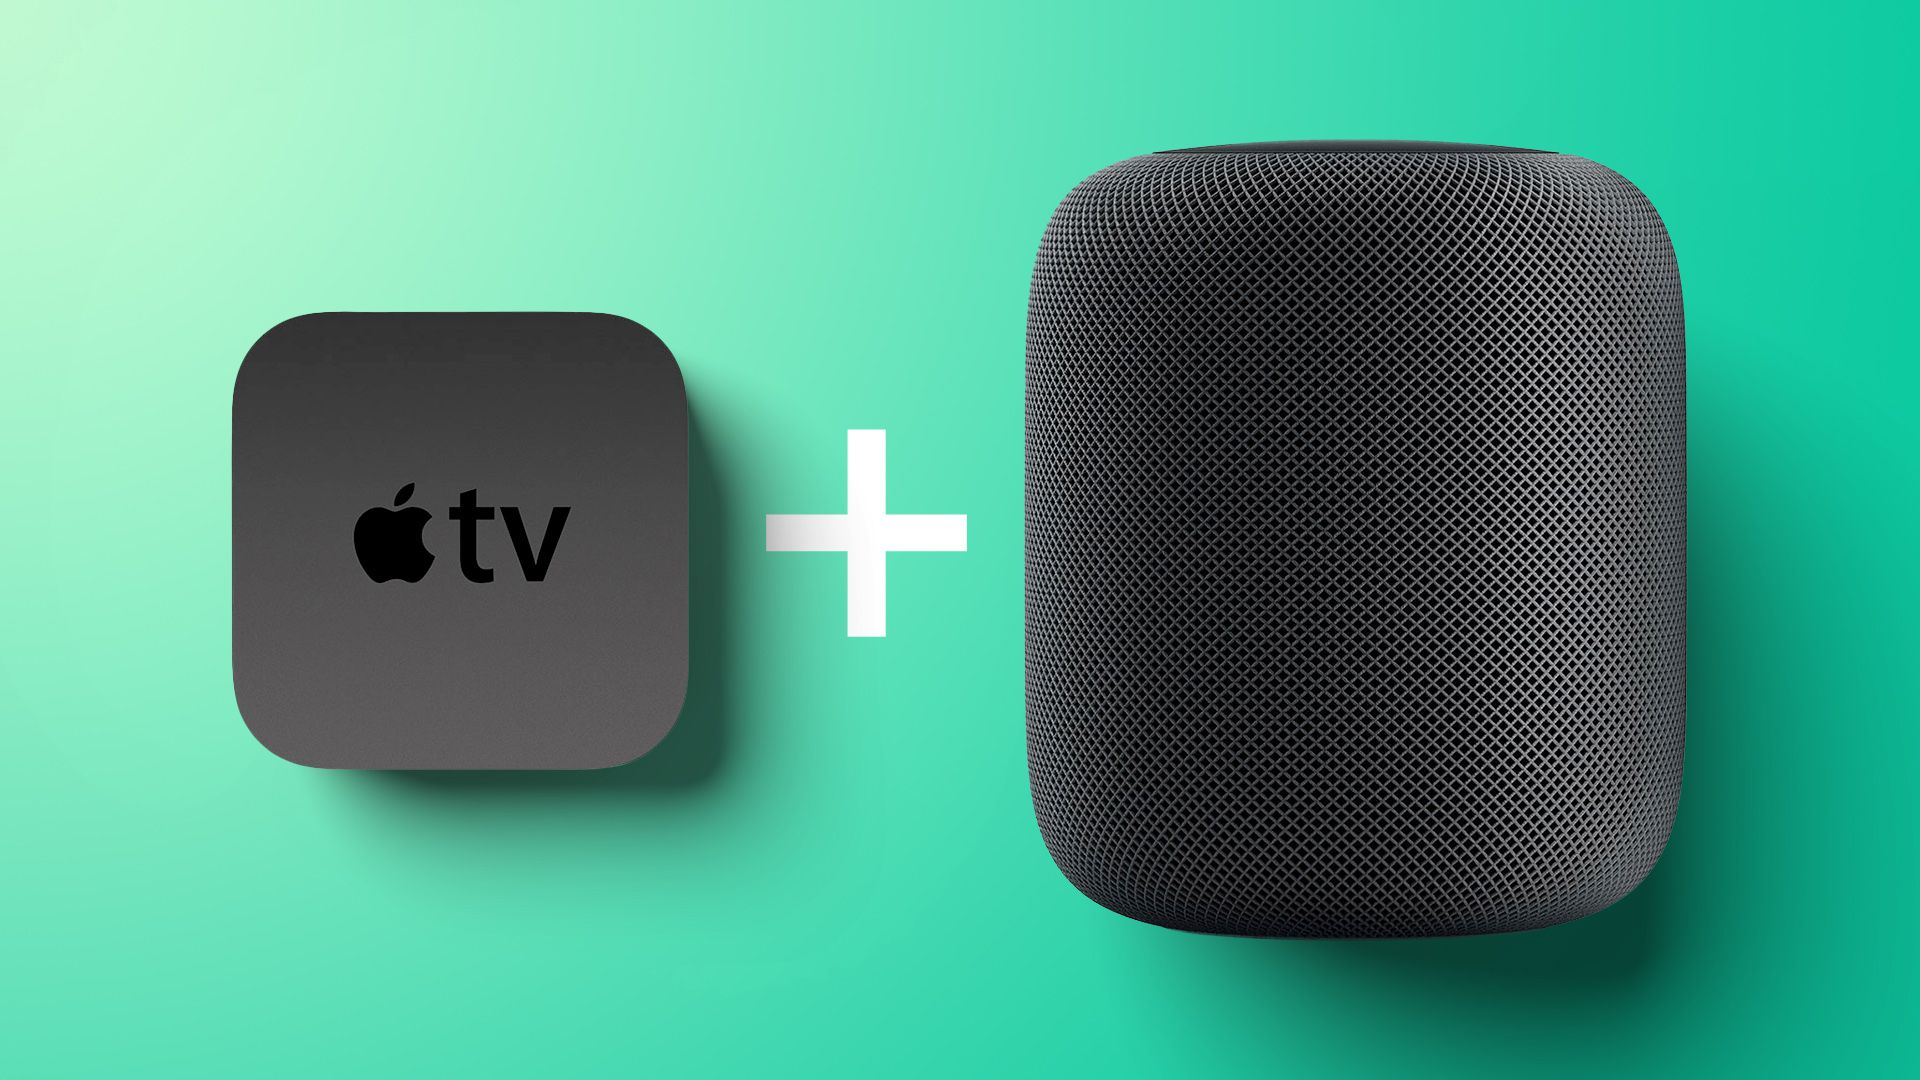 Bloomberg: Apple Working on New Apple TV With Integrated HomePod Speaker  and FaceTime Camera - MacRumors